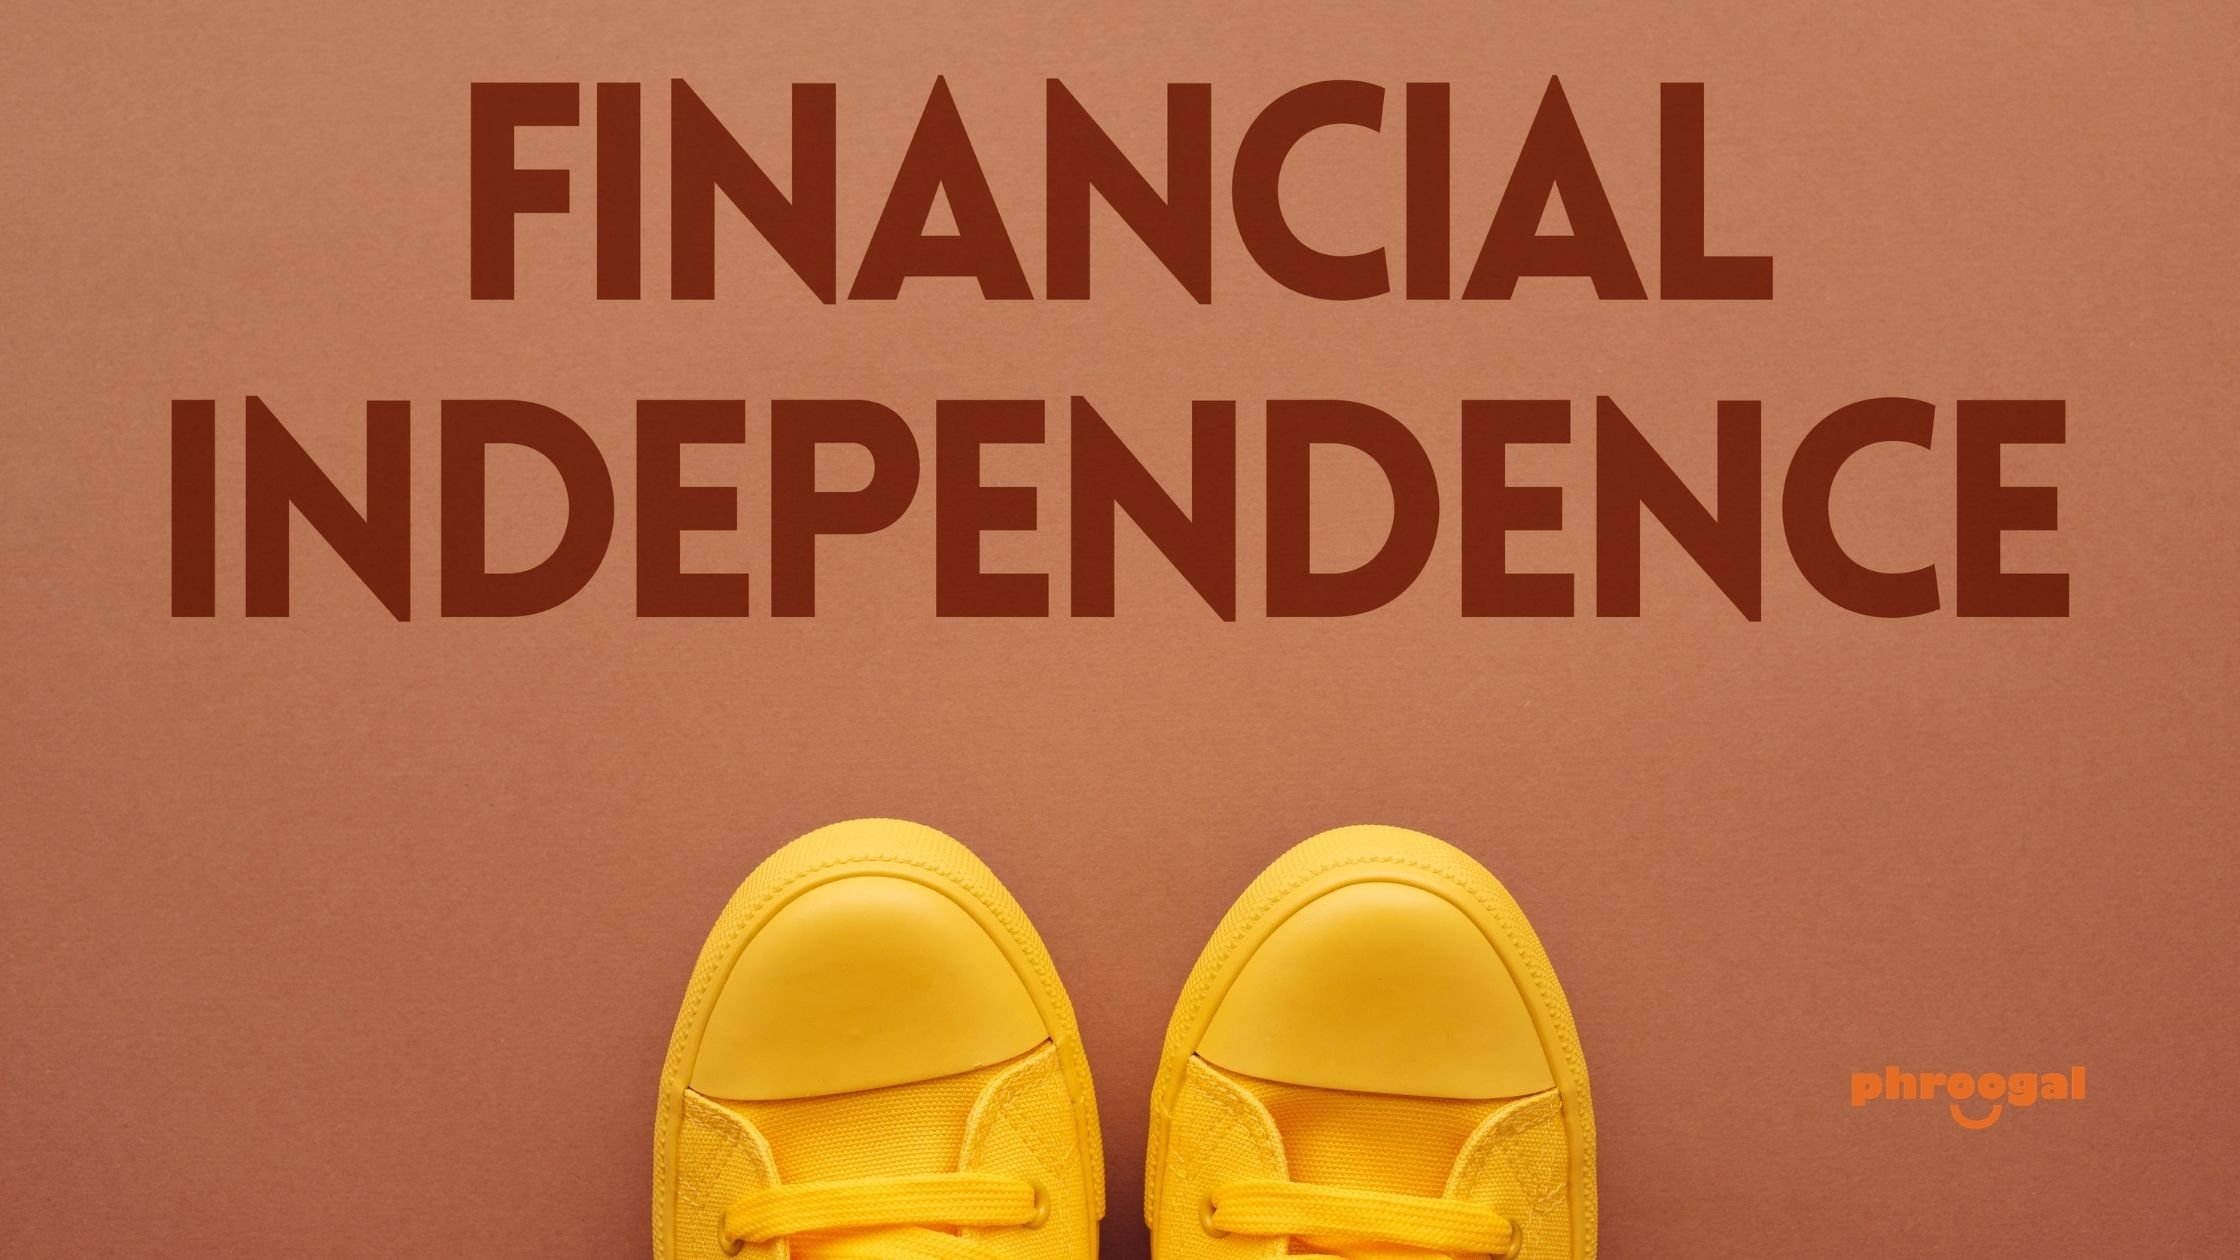 Achieve Financial Independence phroogal